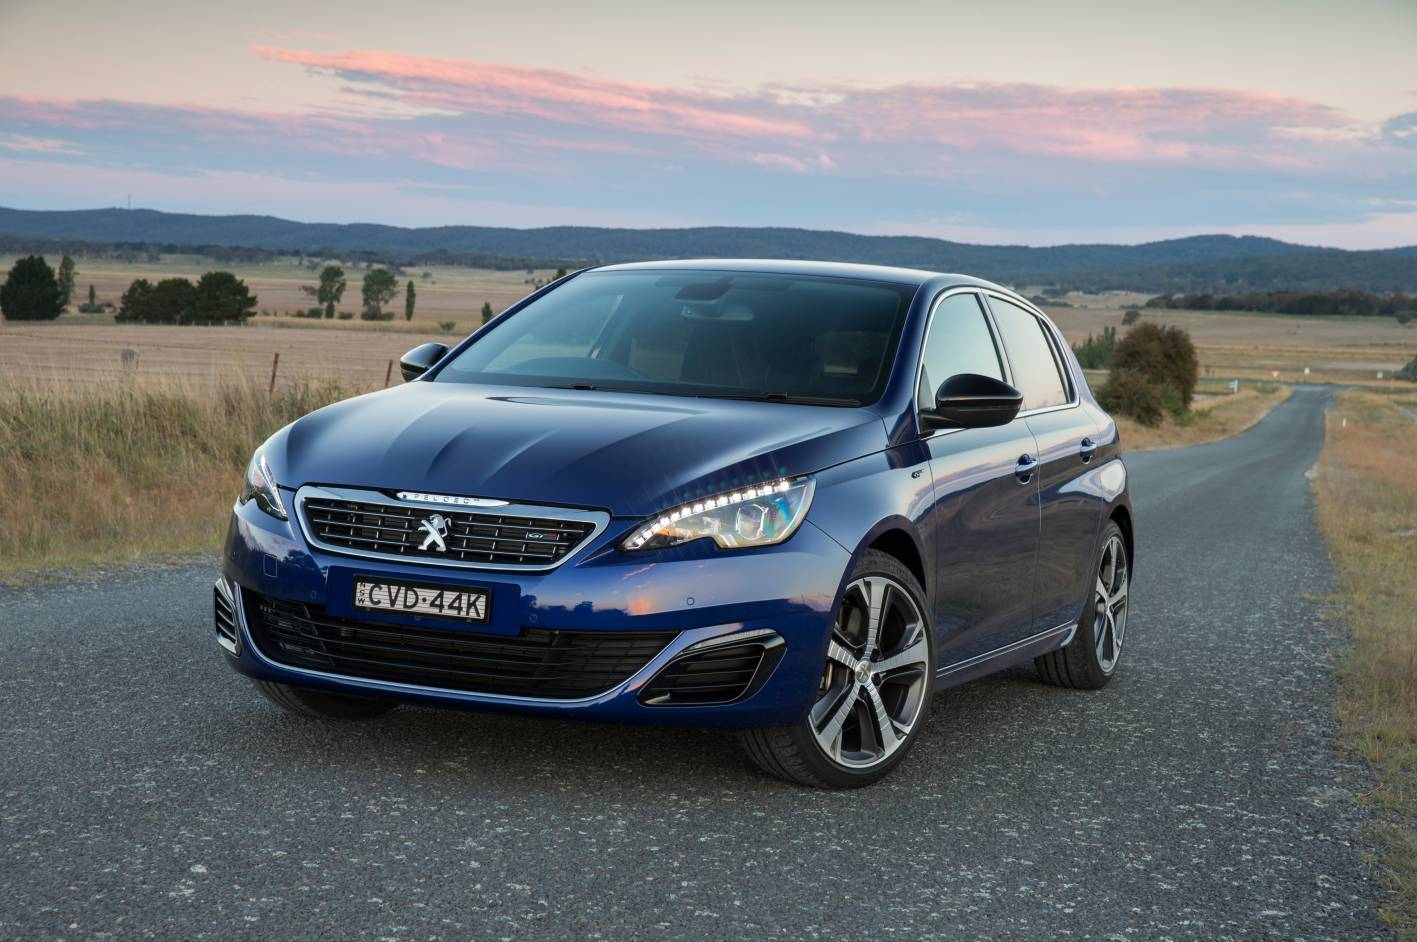 review 2015 peugeot 308 gt review and road test. Black Bedroom Furniture Sets. Home Design Ideas